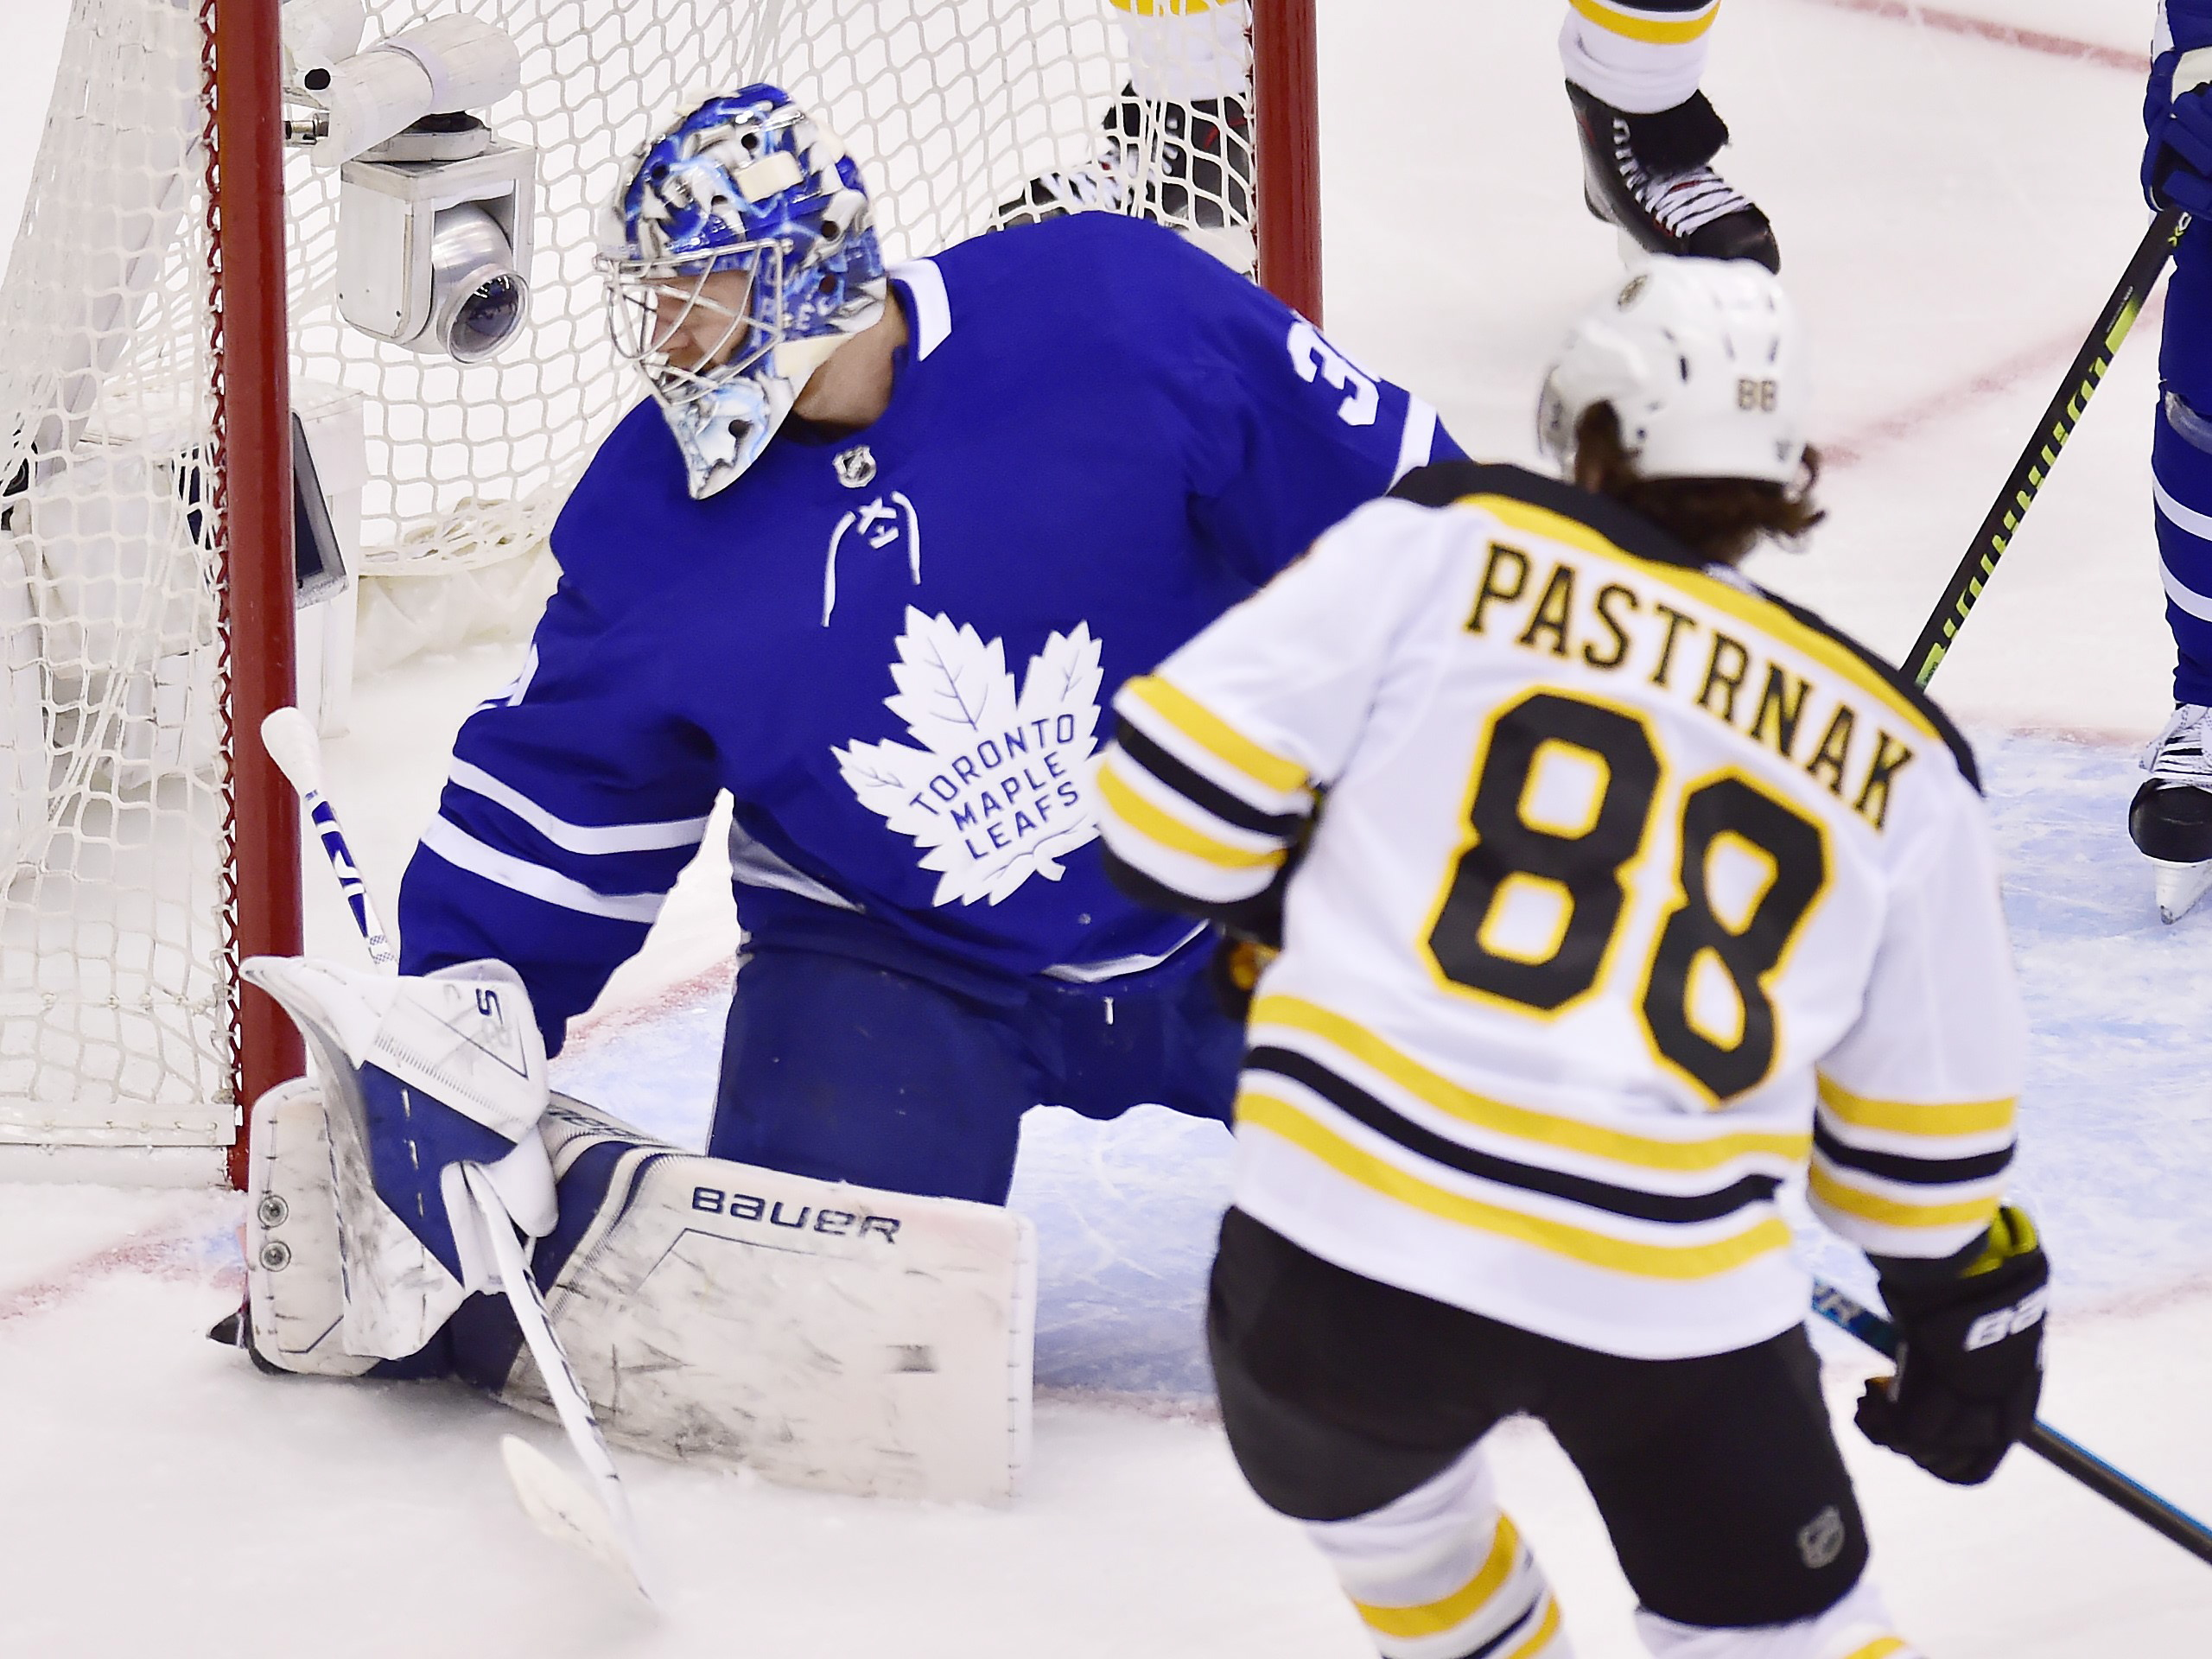 f1ae1bf88e7 Analyzing how and why the Maple Leafs lost again to the Bruins